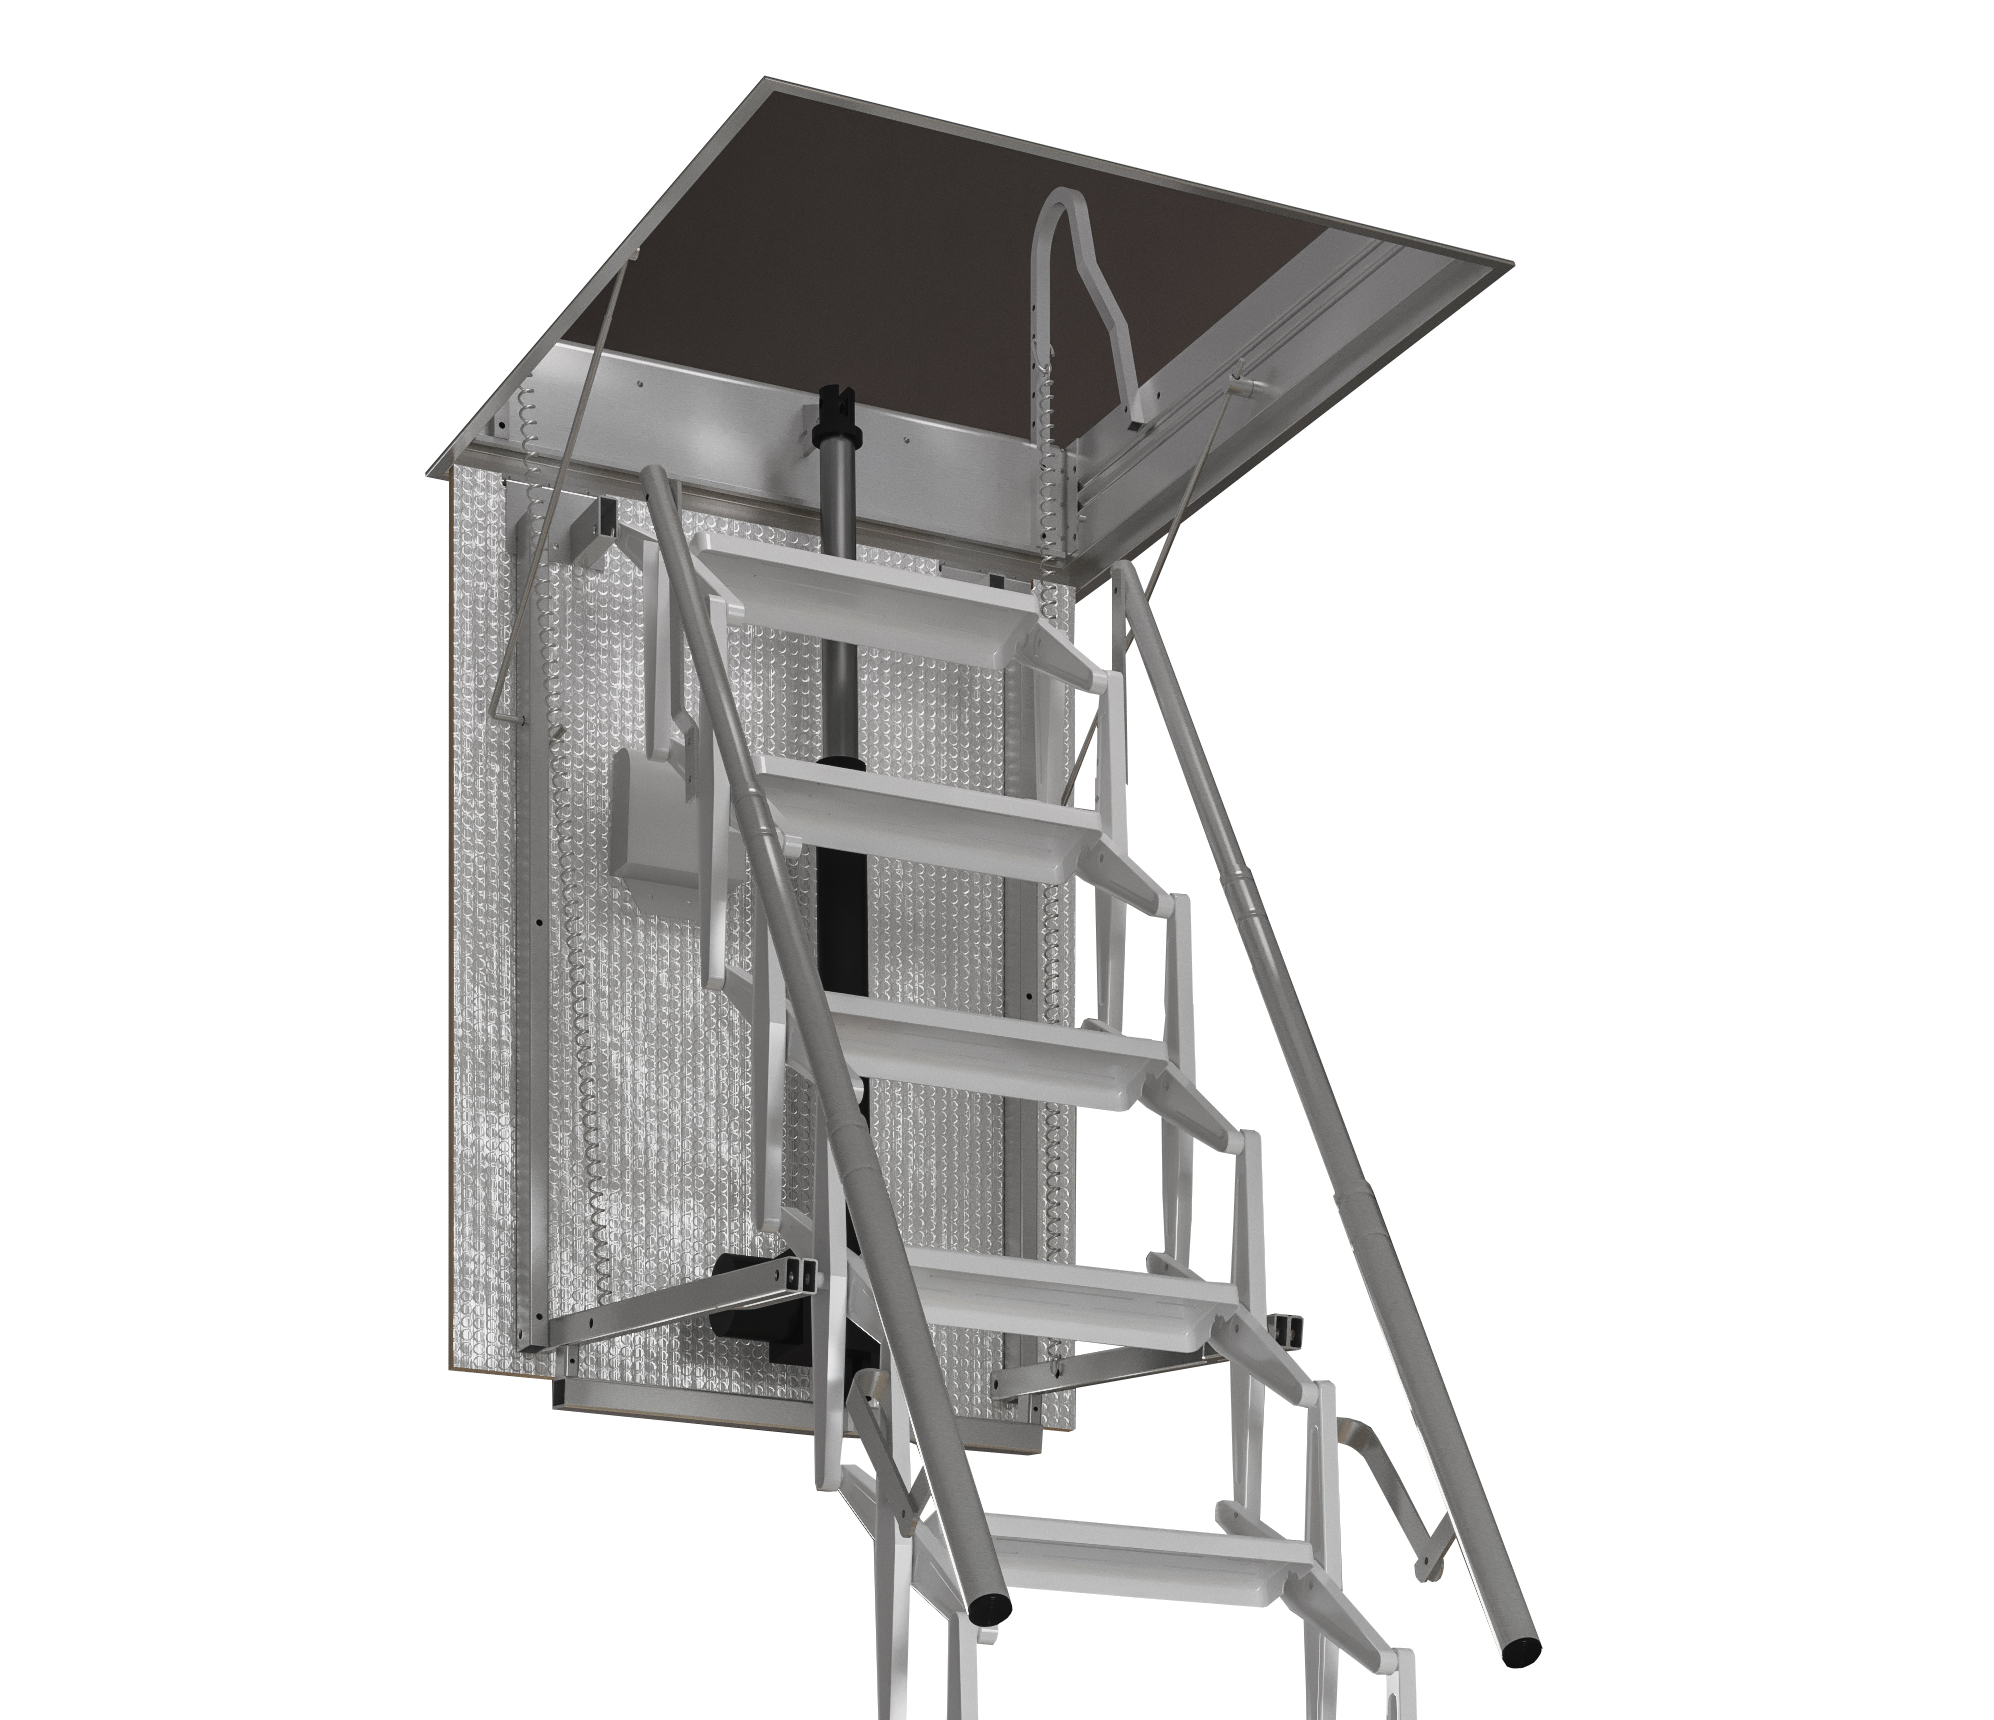 Escalmatic electric loft ladder has NBS specification